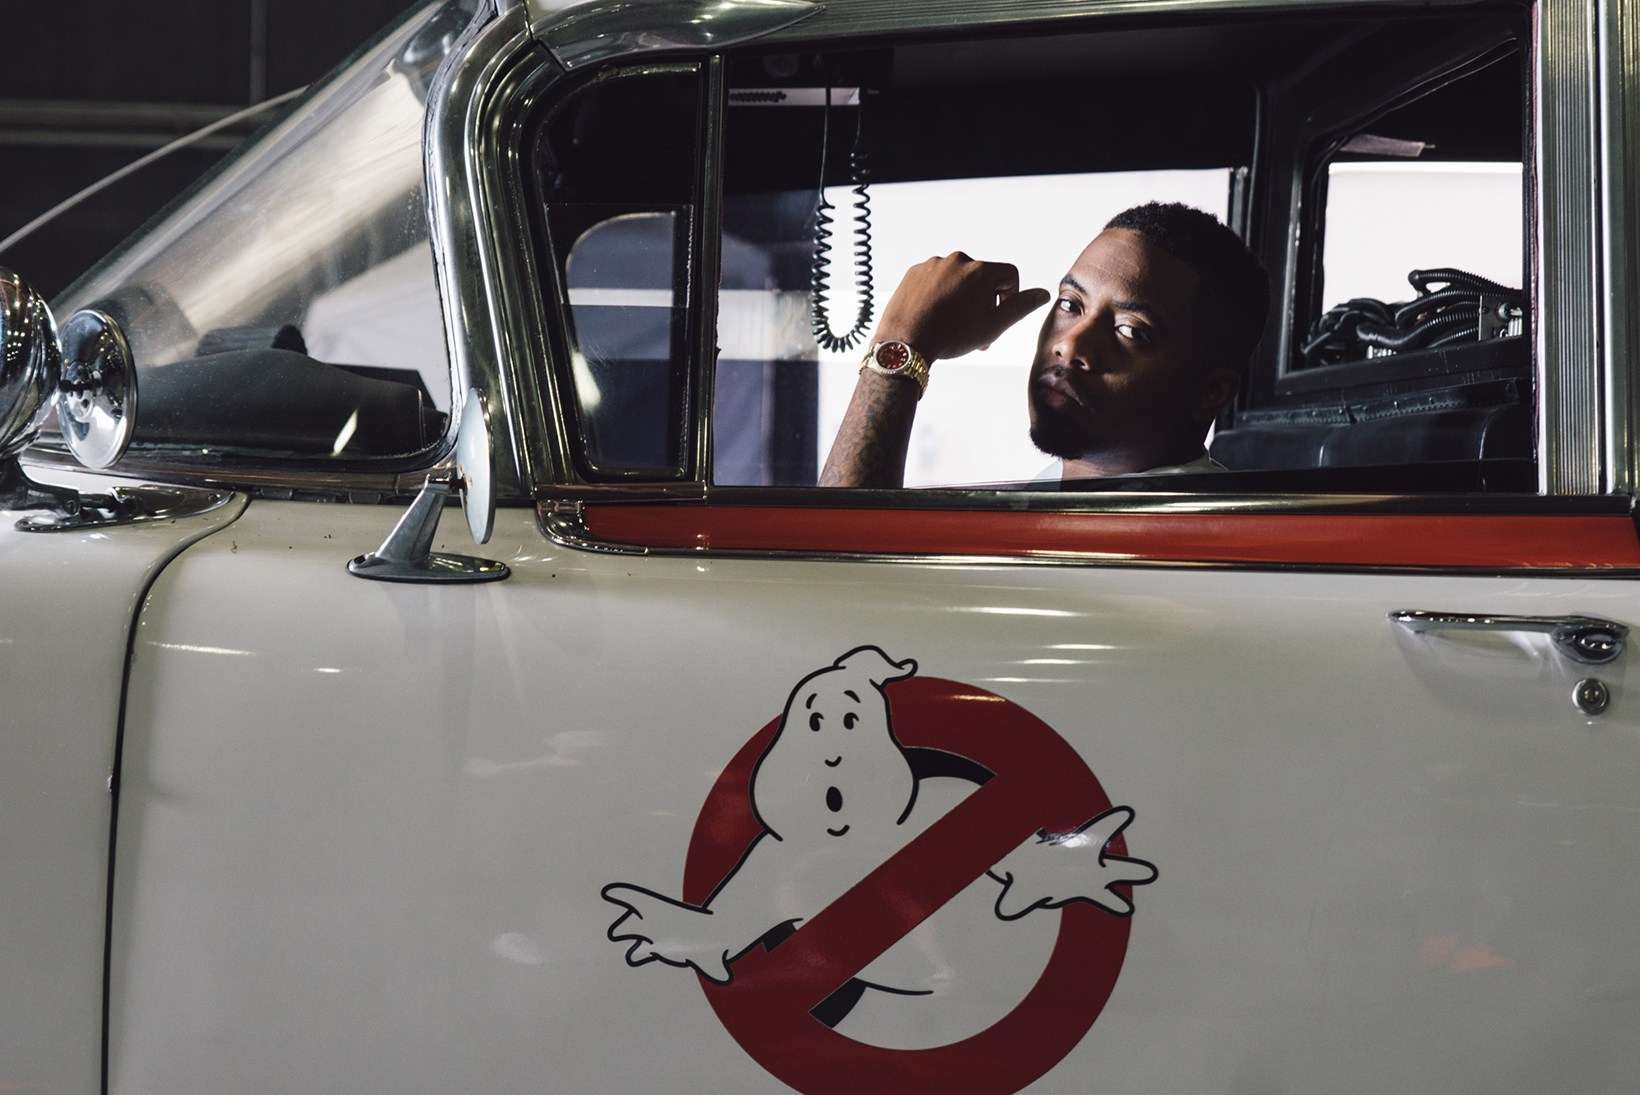 nas-hstry-clothing-ghostbusters-02